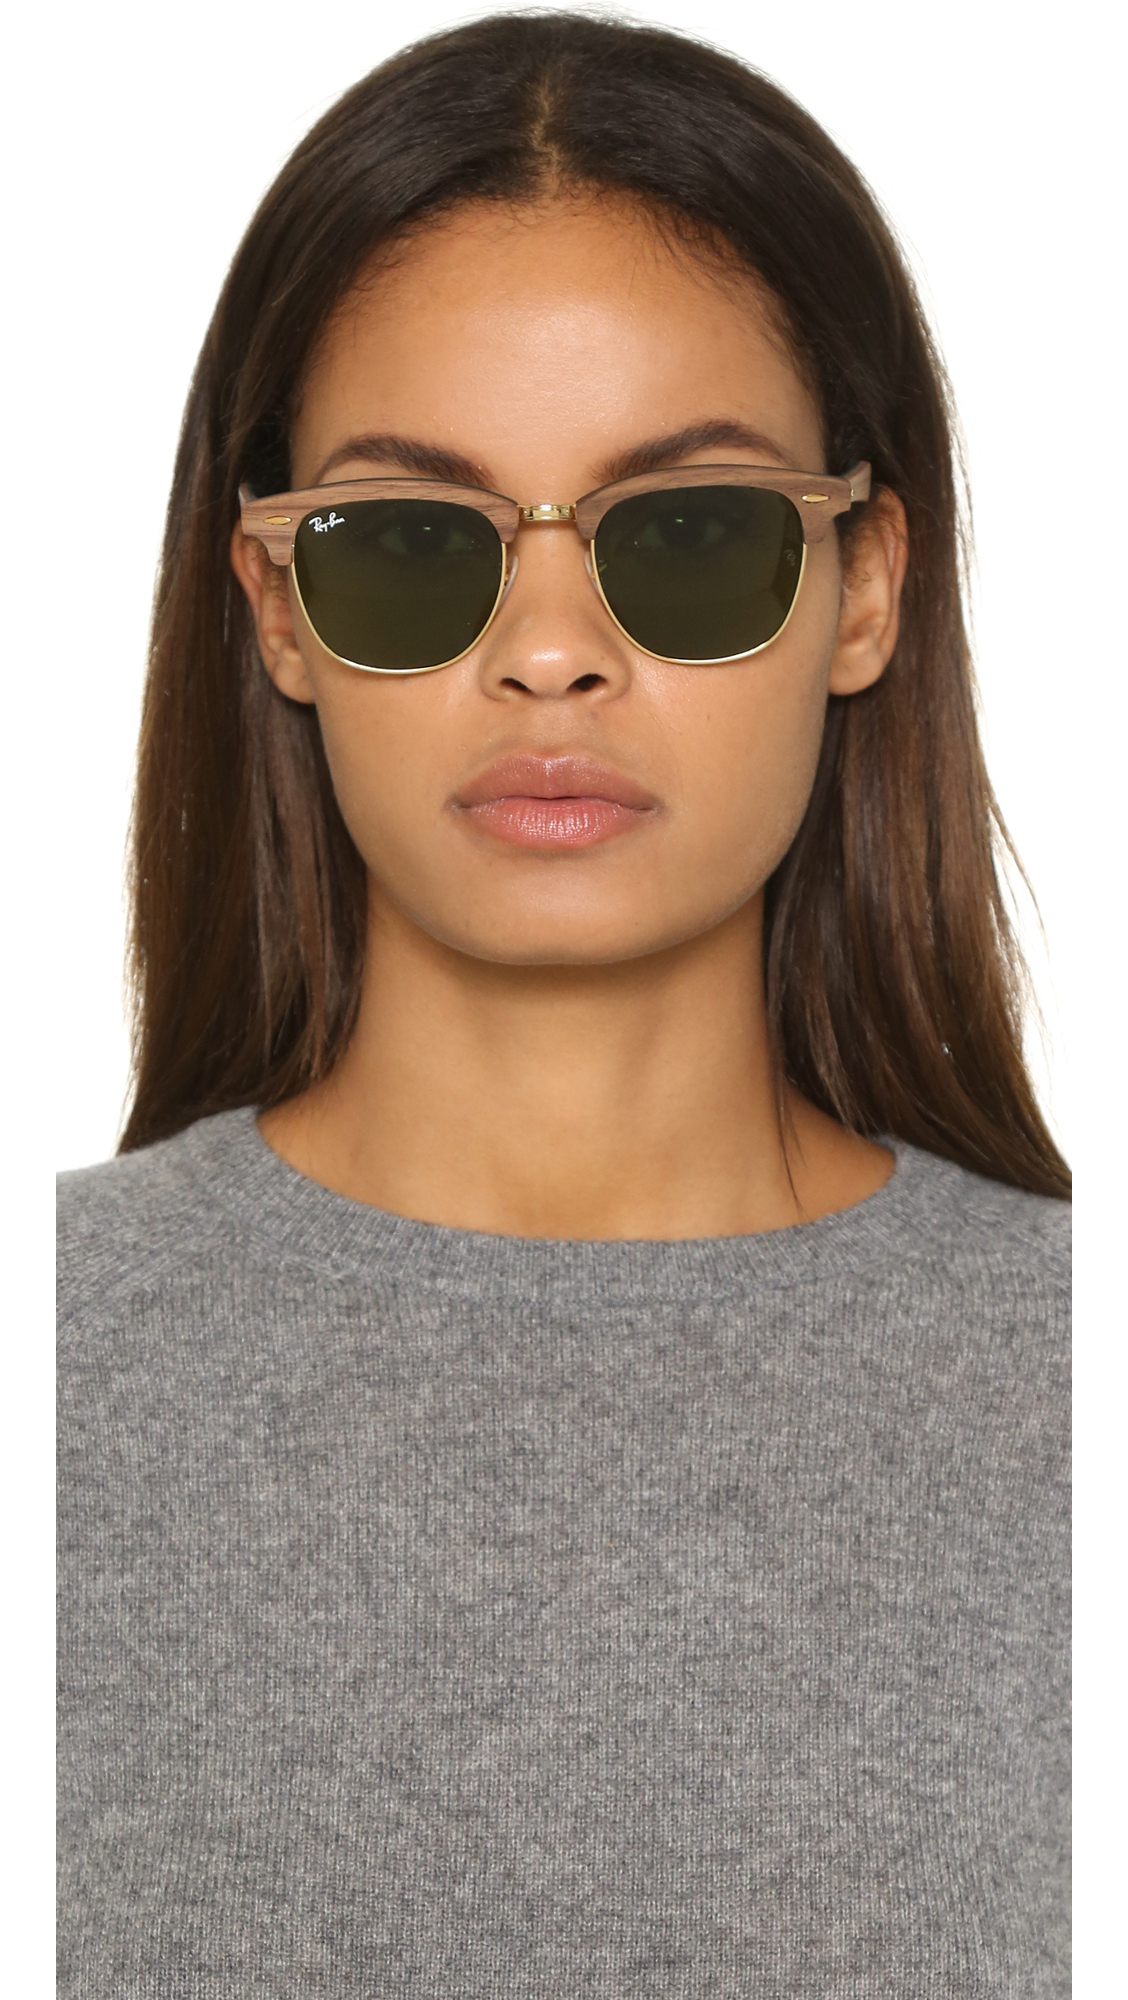 d2e2fb093aa65 ... netherlands lyst ray ban clubmaster wood sunglasses in brown 8807a 6ea94